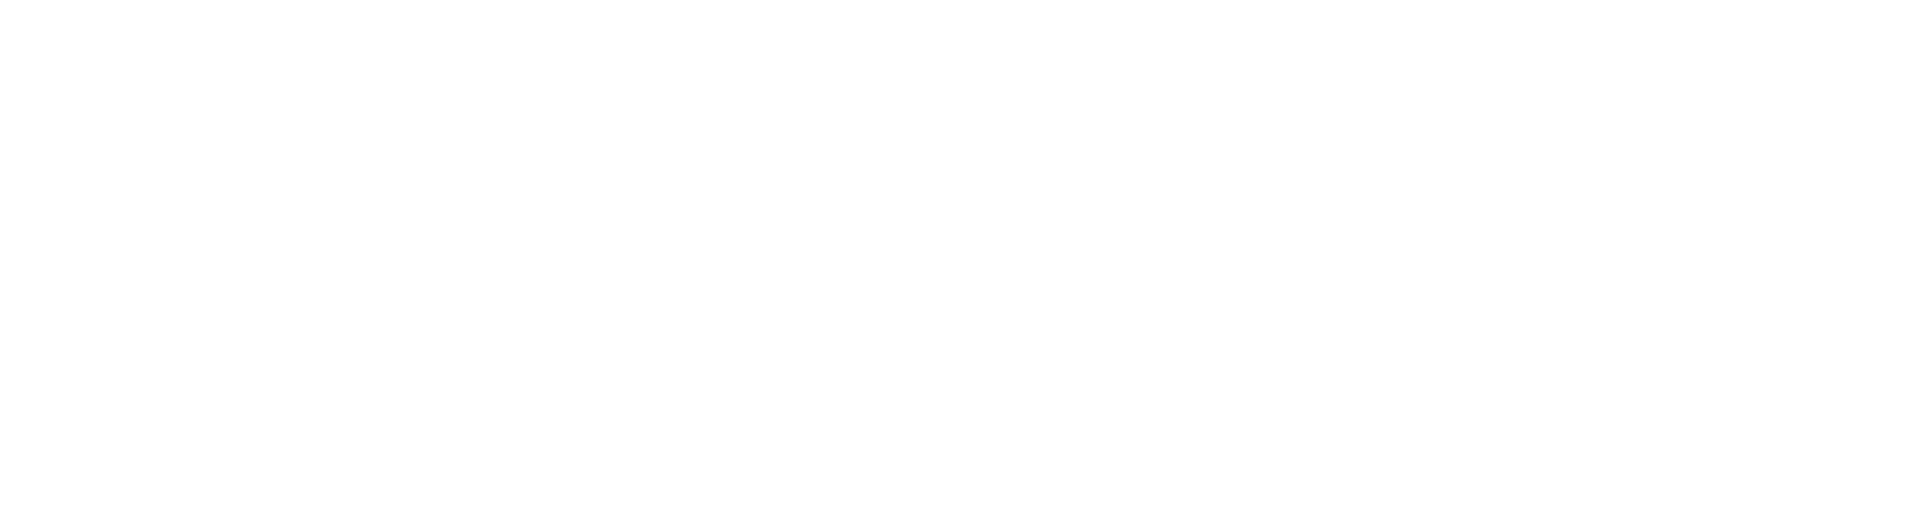 Acadia Deep Sea Fishing Tours